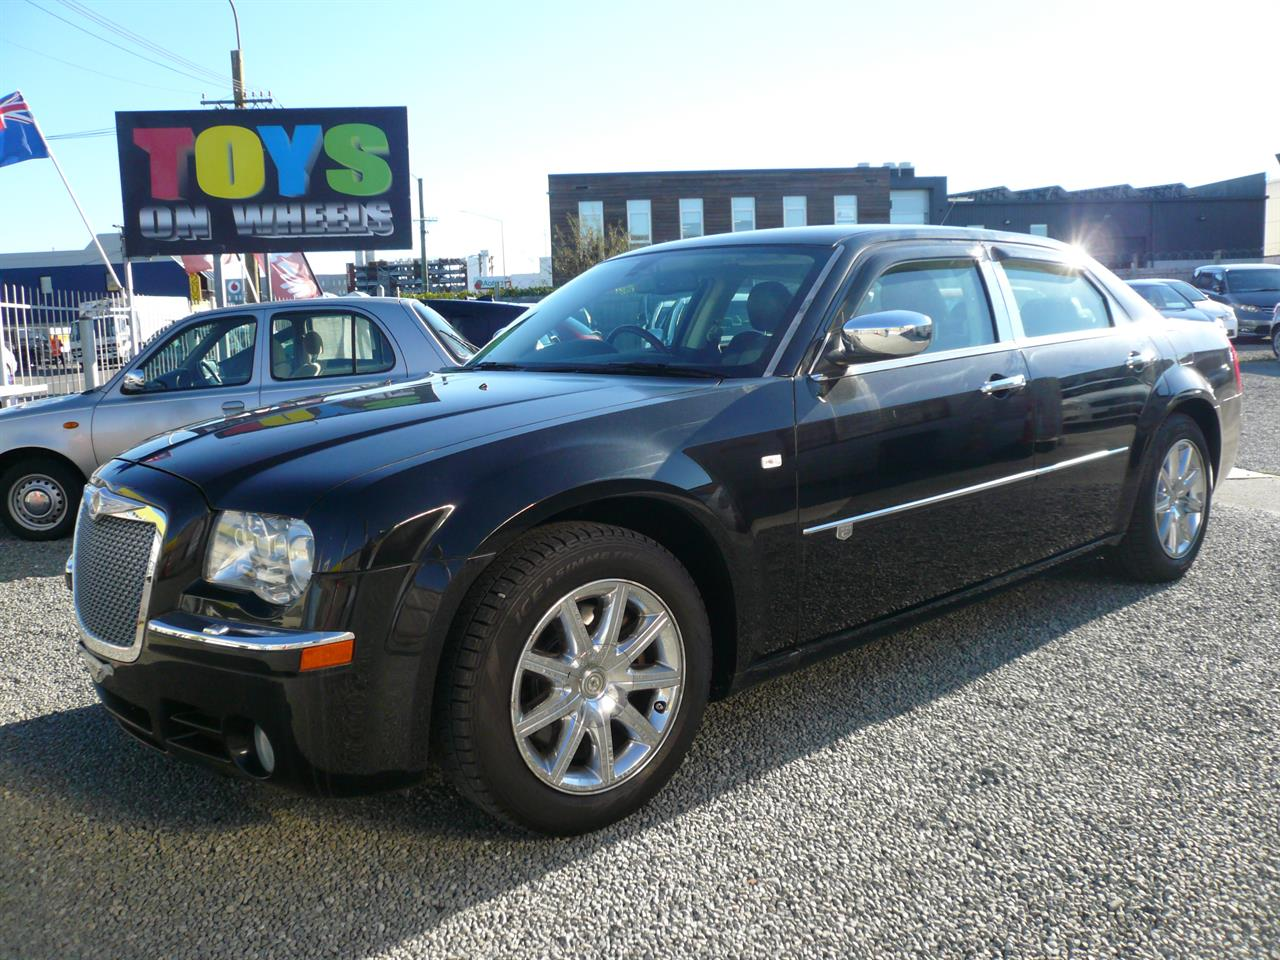 Motors Cars & parts Cars : 2010 Chrysler 300c 3500cc leather alloys abs airbags